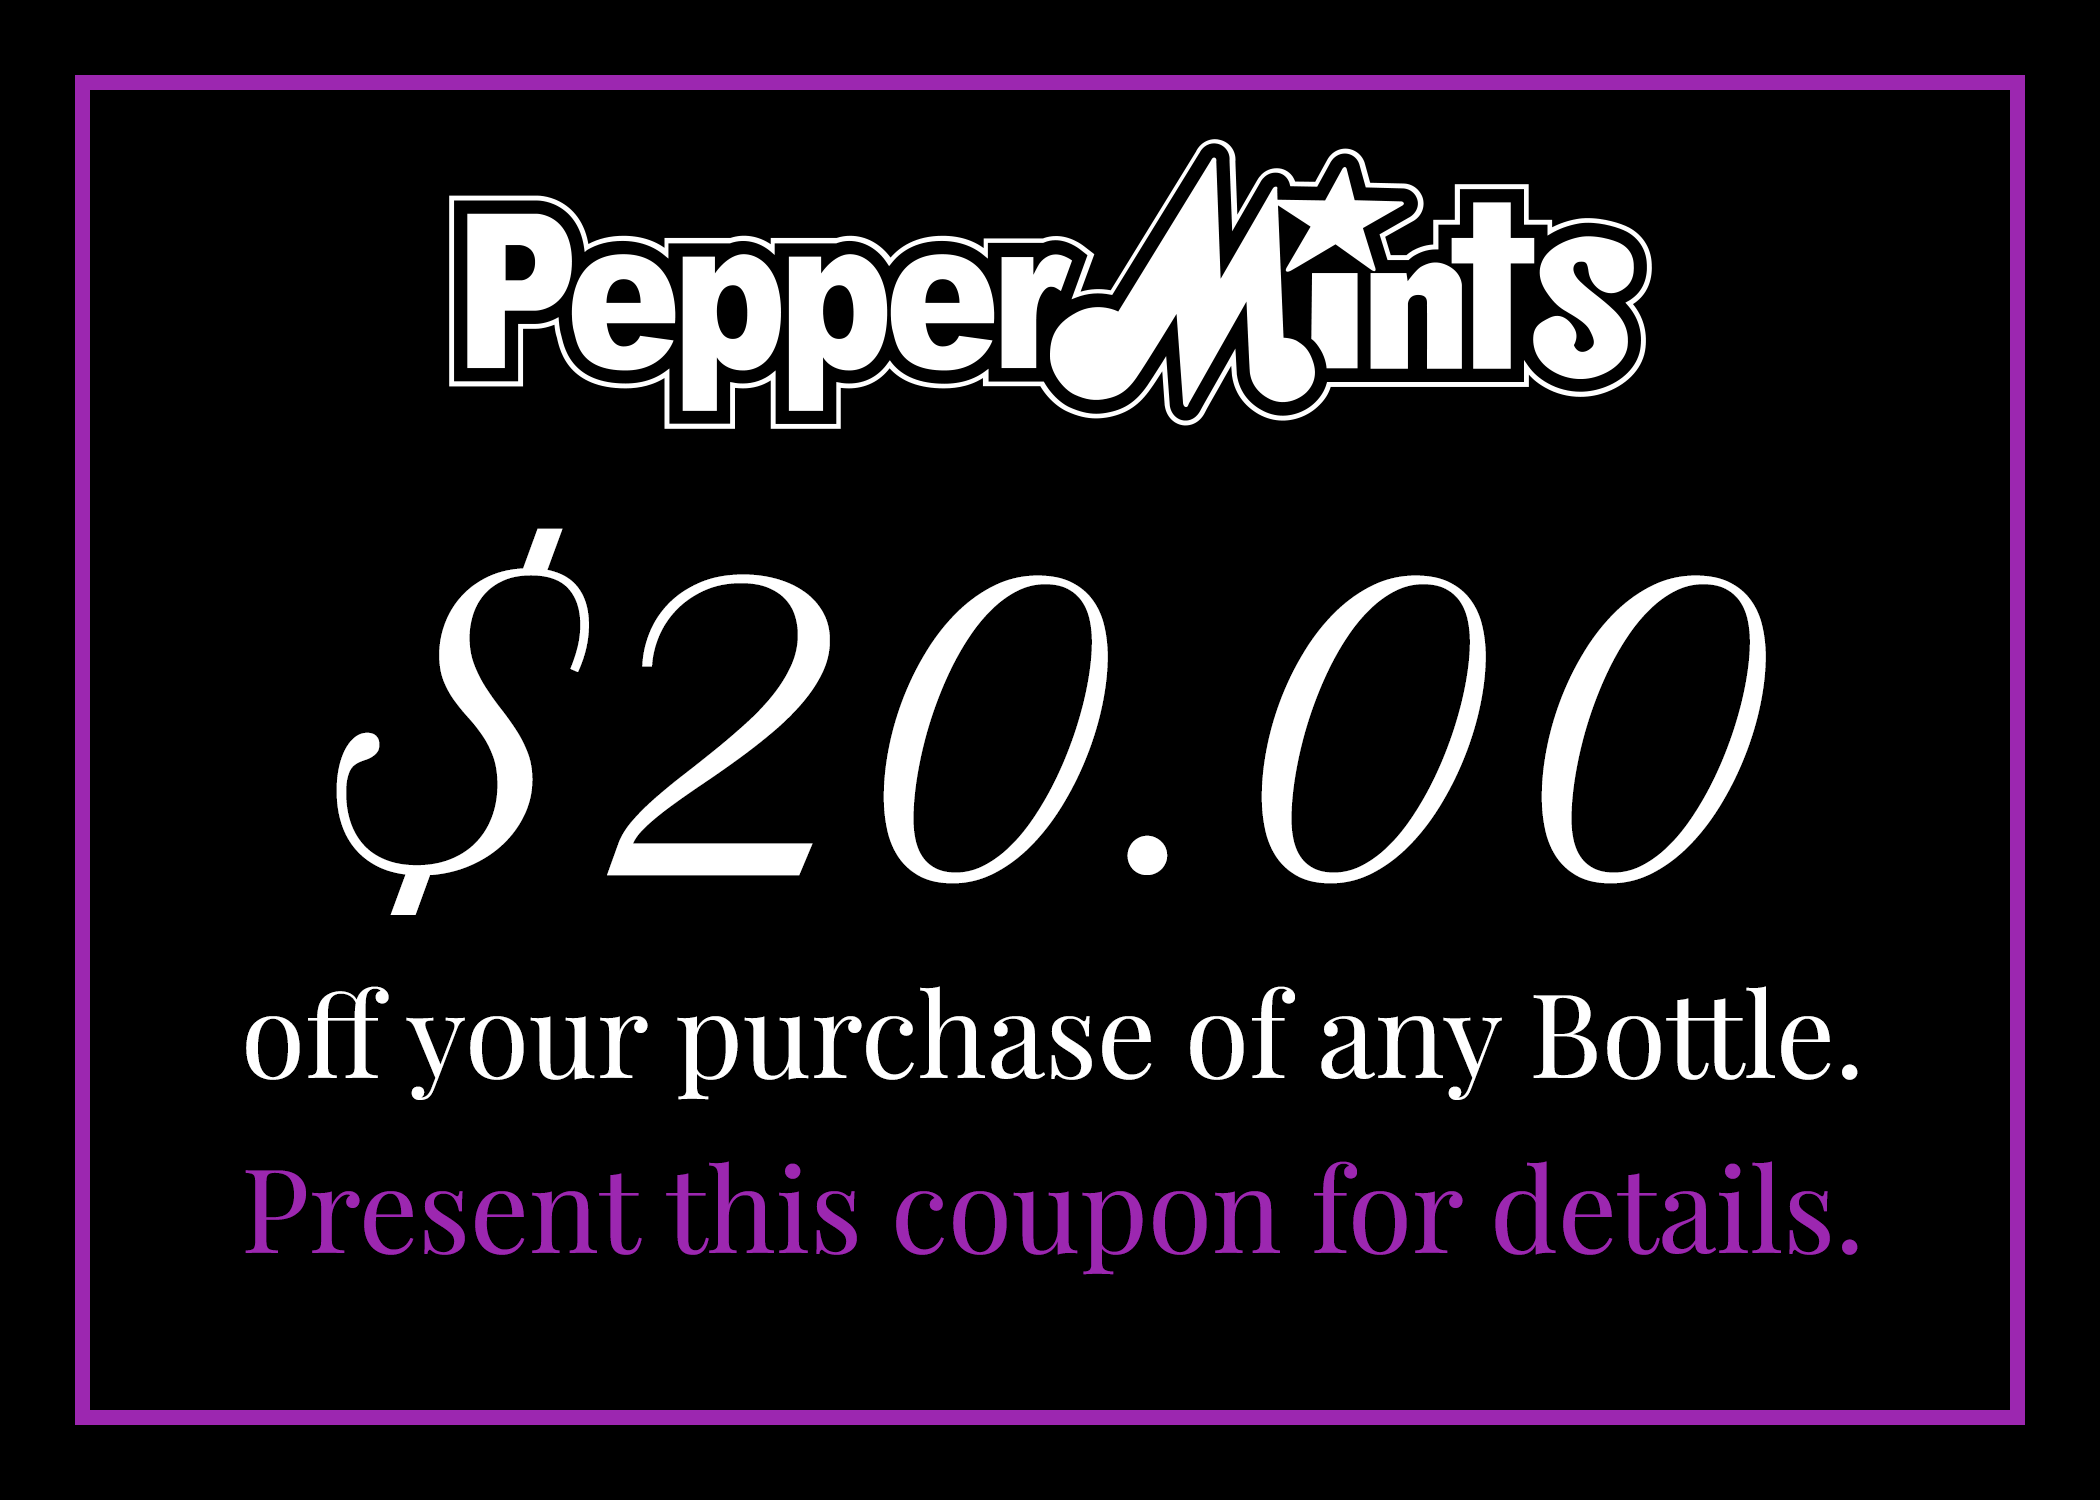 //peppermintsniagara.com/wp-content/uploads/2018/06/coupon-20.png